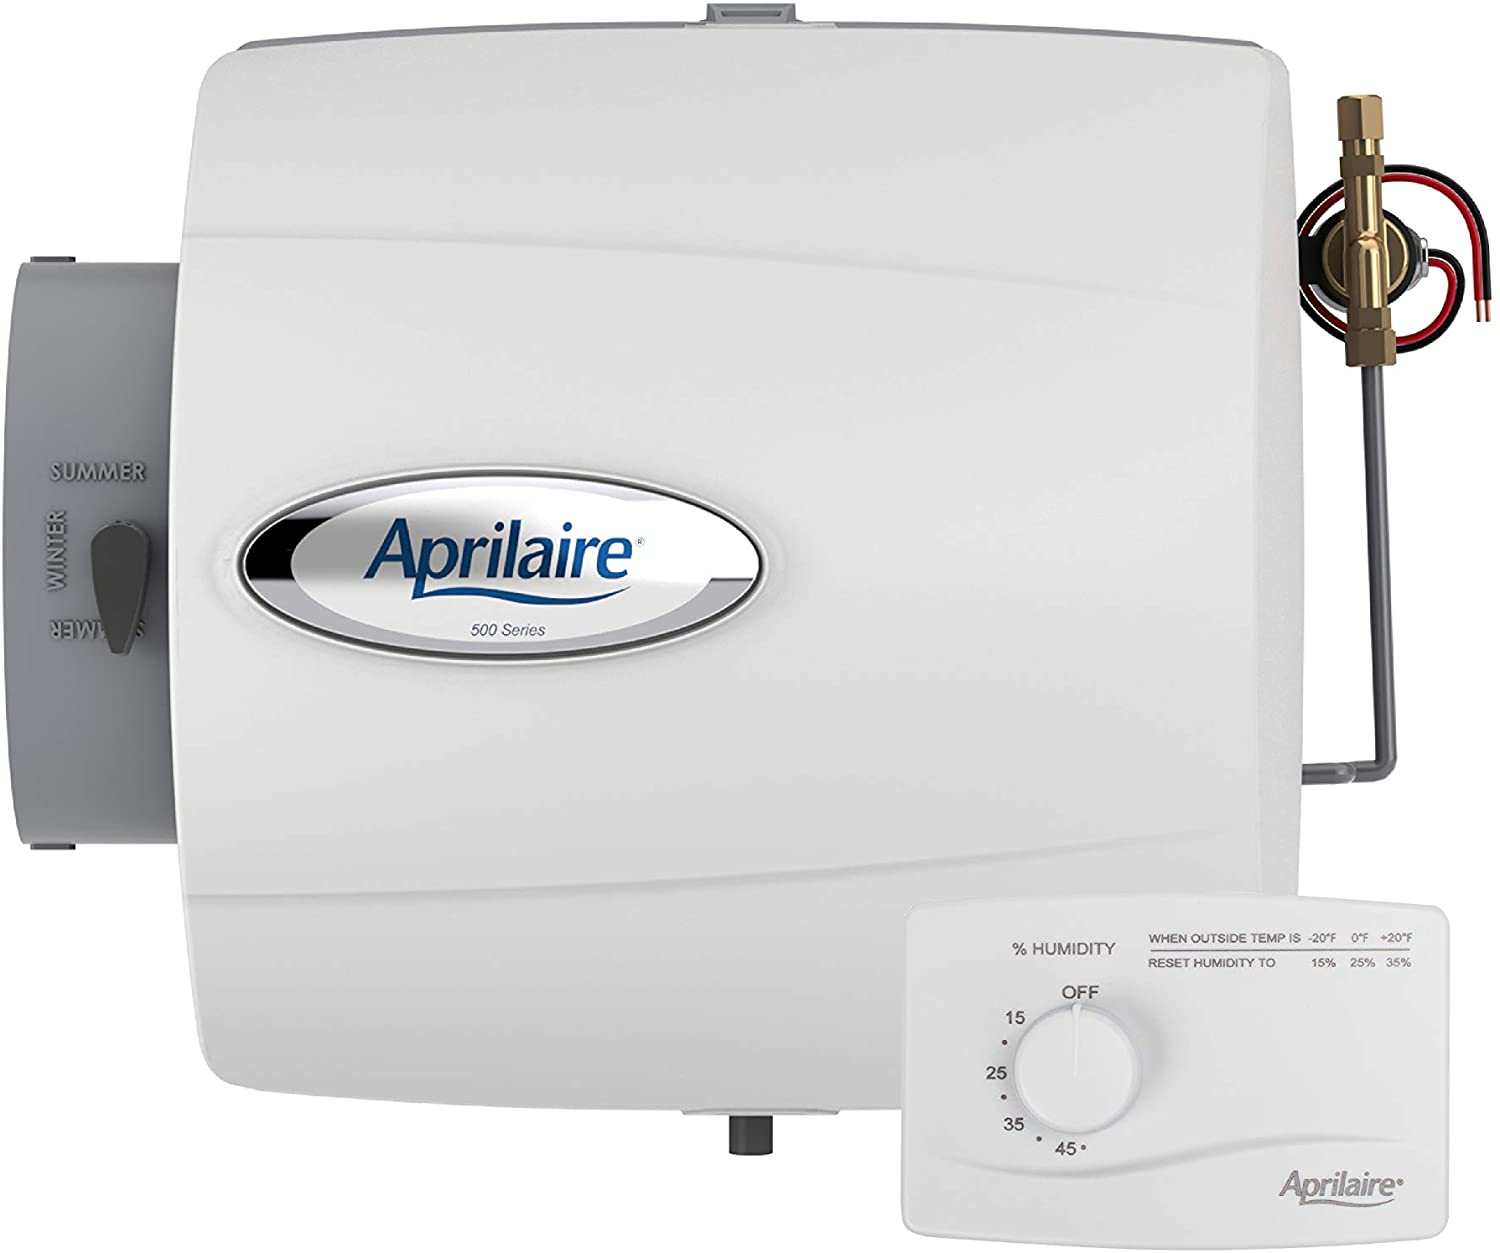 Aprilaire 500M best Whole Home Humidifier